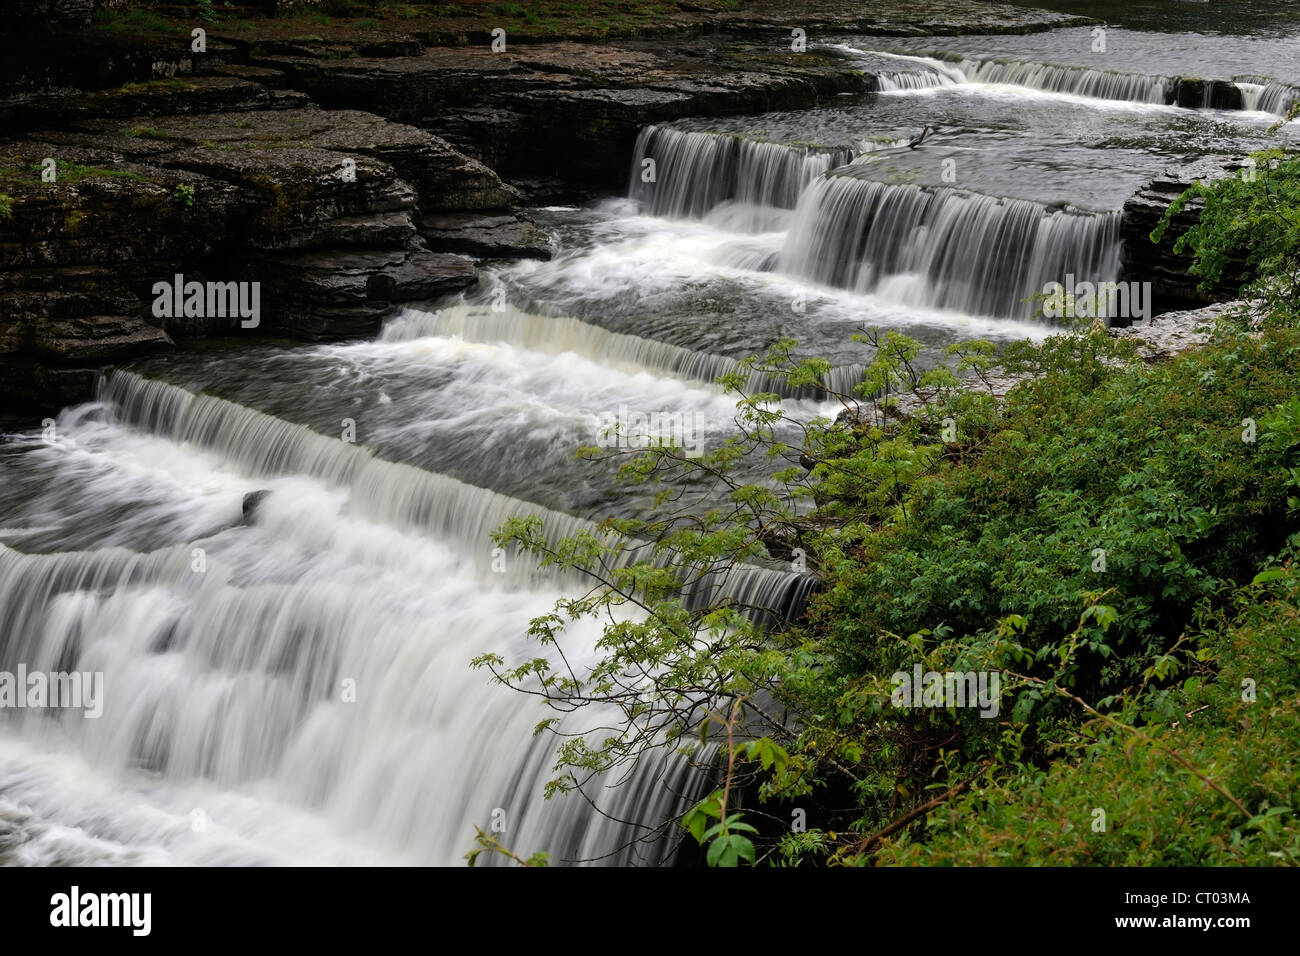 The spectacular Aysgarth Lower Falls, Wensleydale, Yorkshire, England - Stock Image